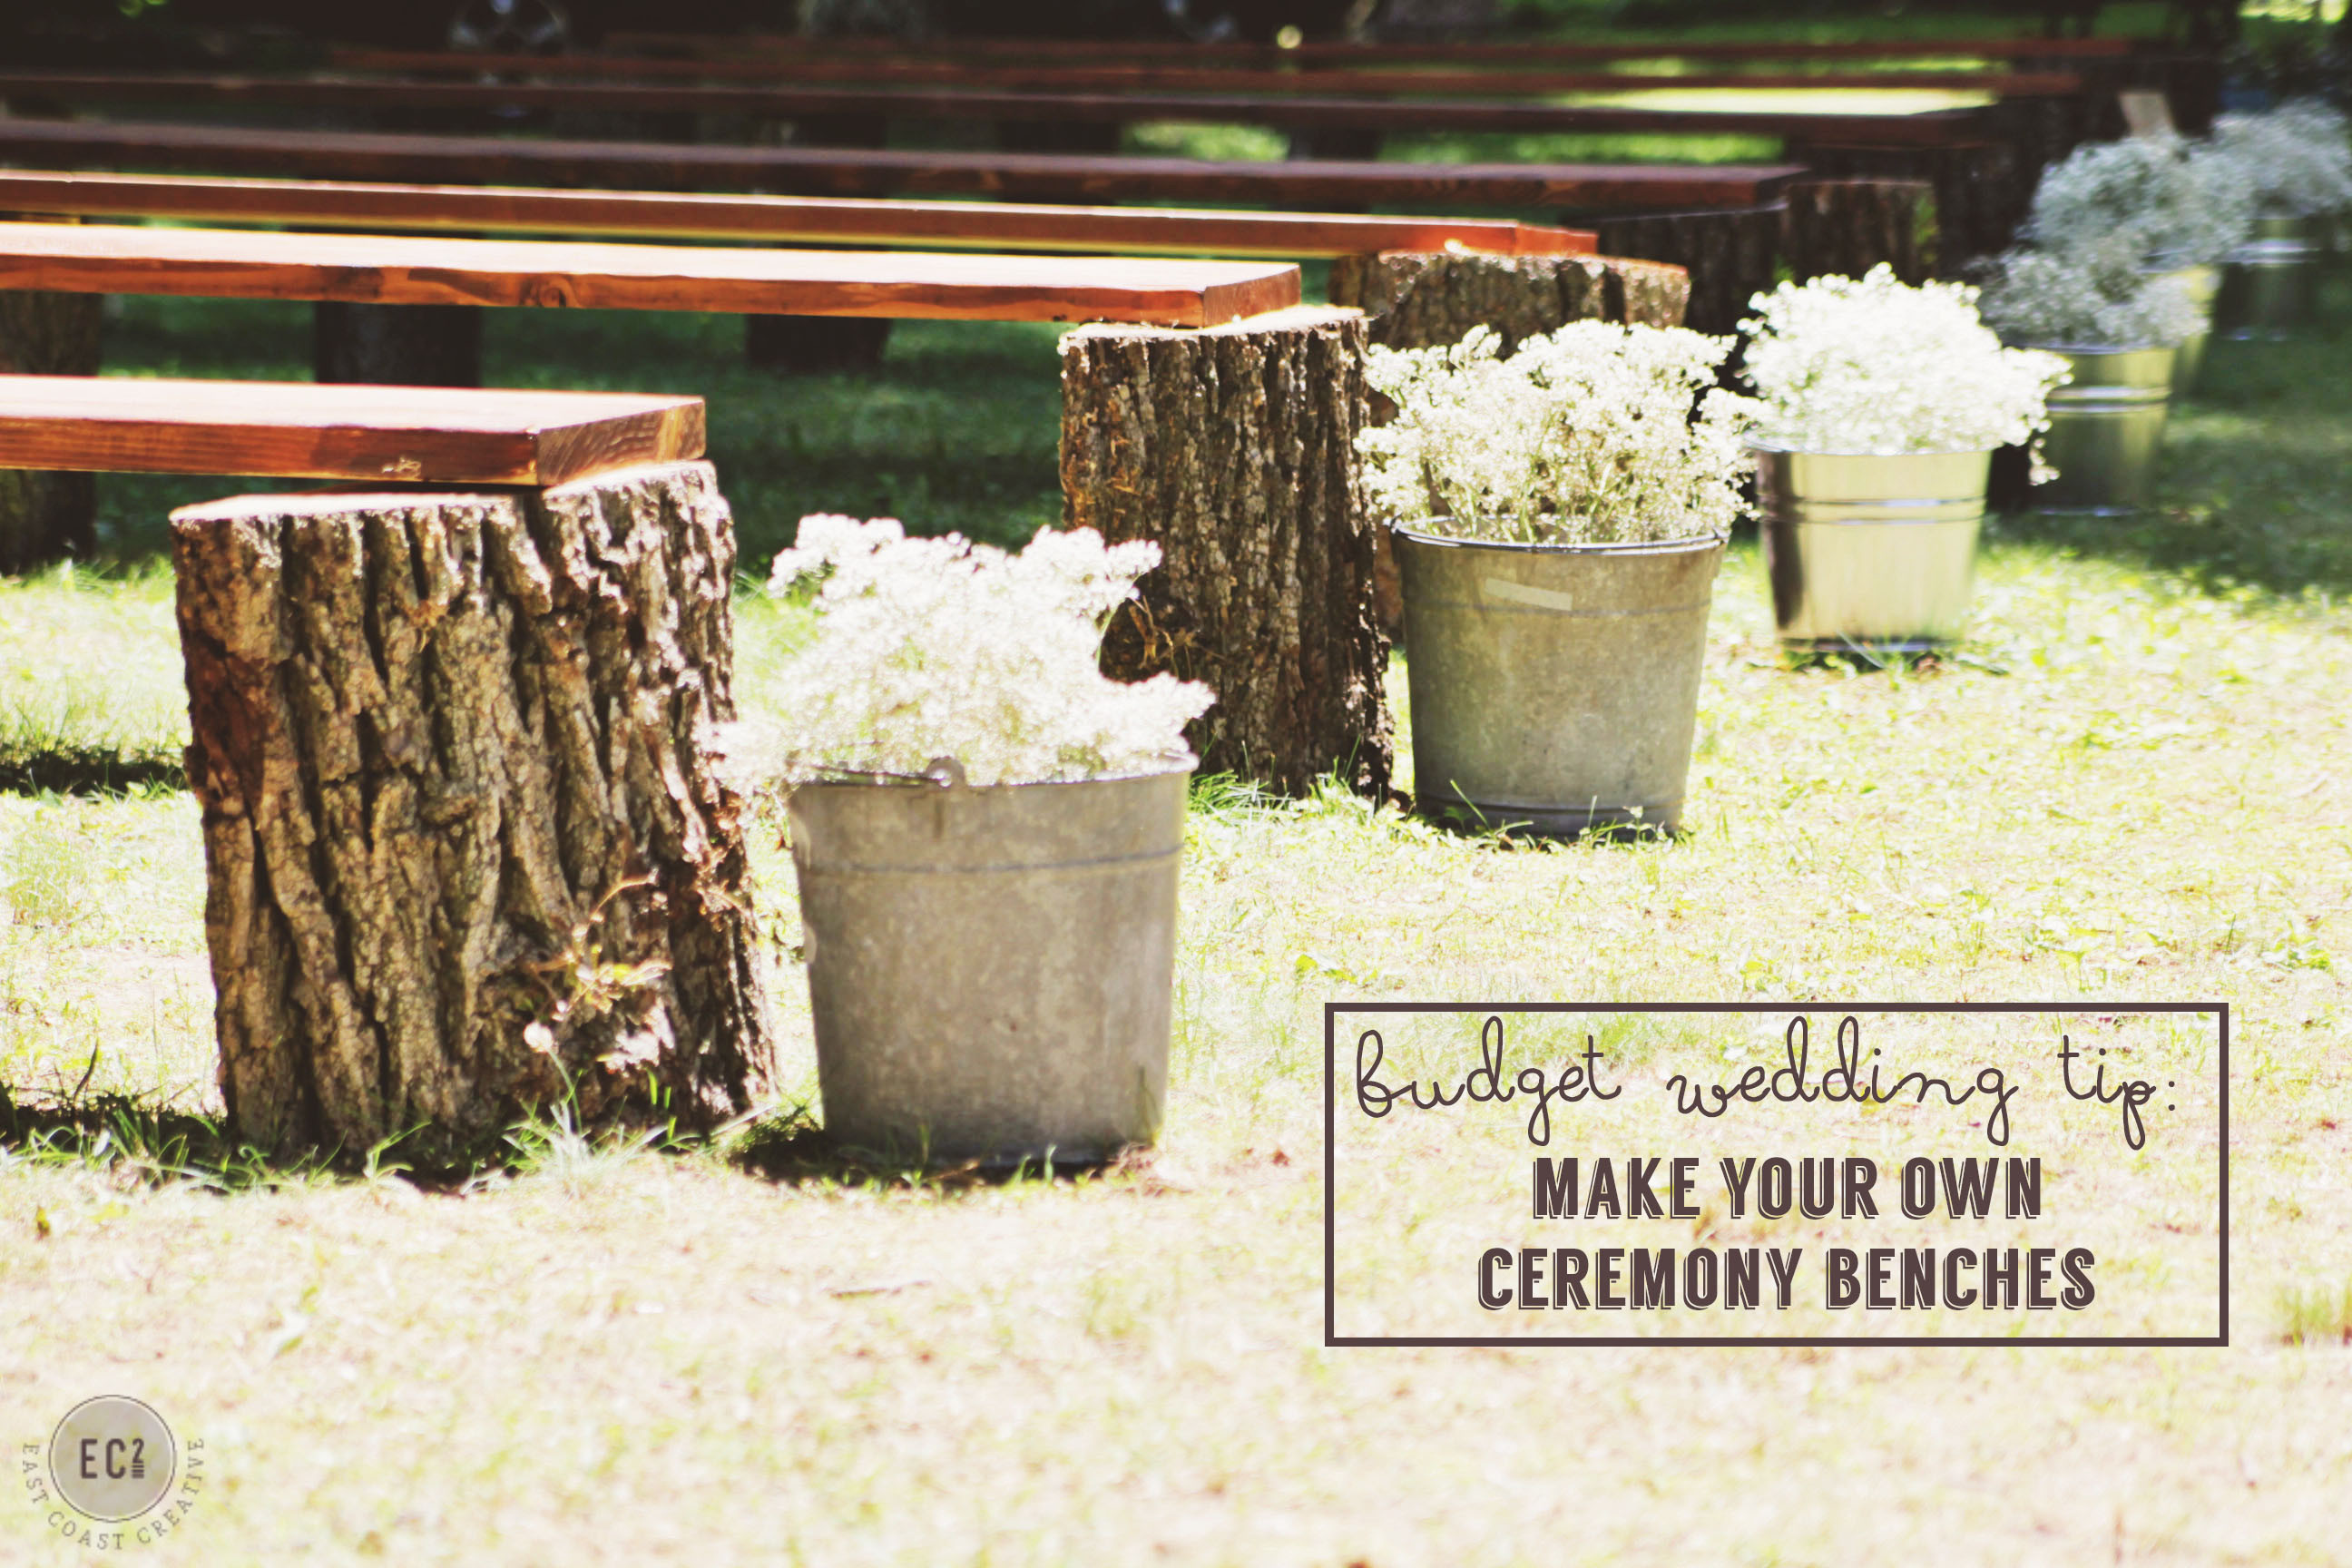 Best ideas about DIY Weddings On A Budget . Save or Pin DIY Wedding Tips on a Bud Vintage Inspired Backyard Now.